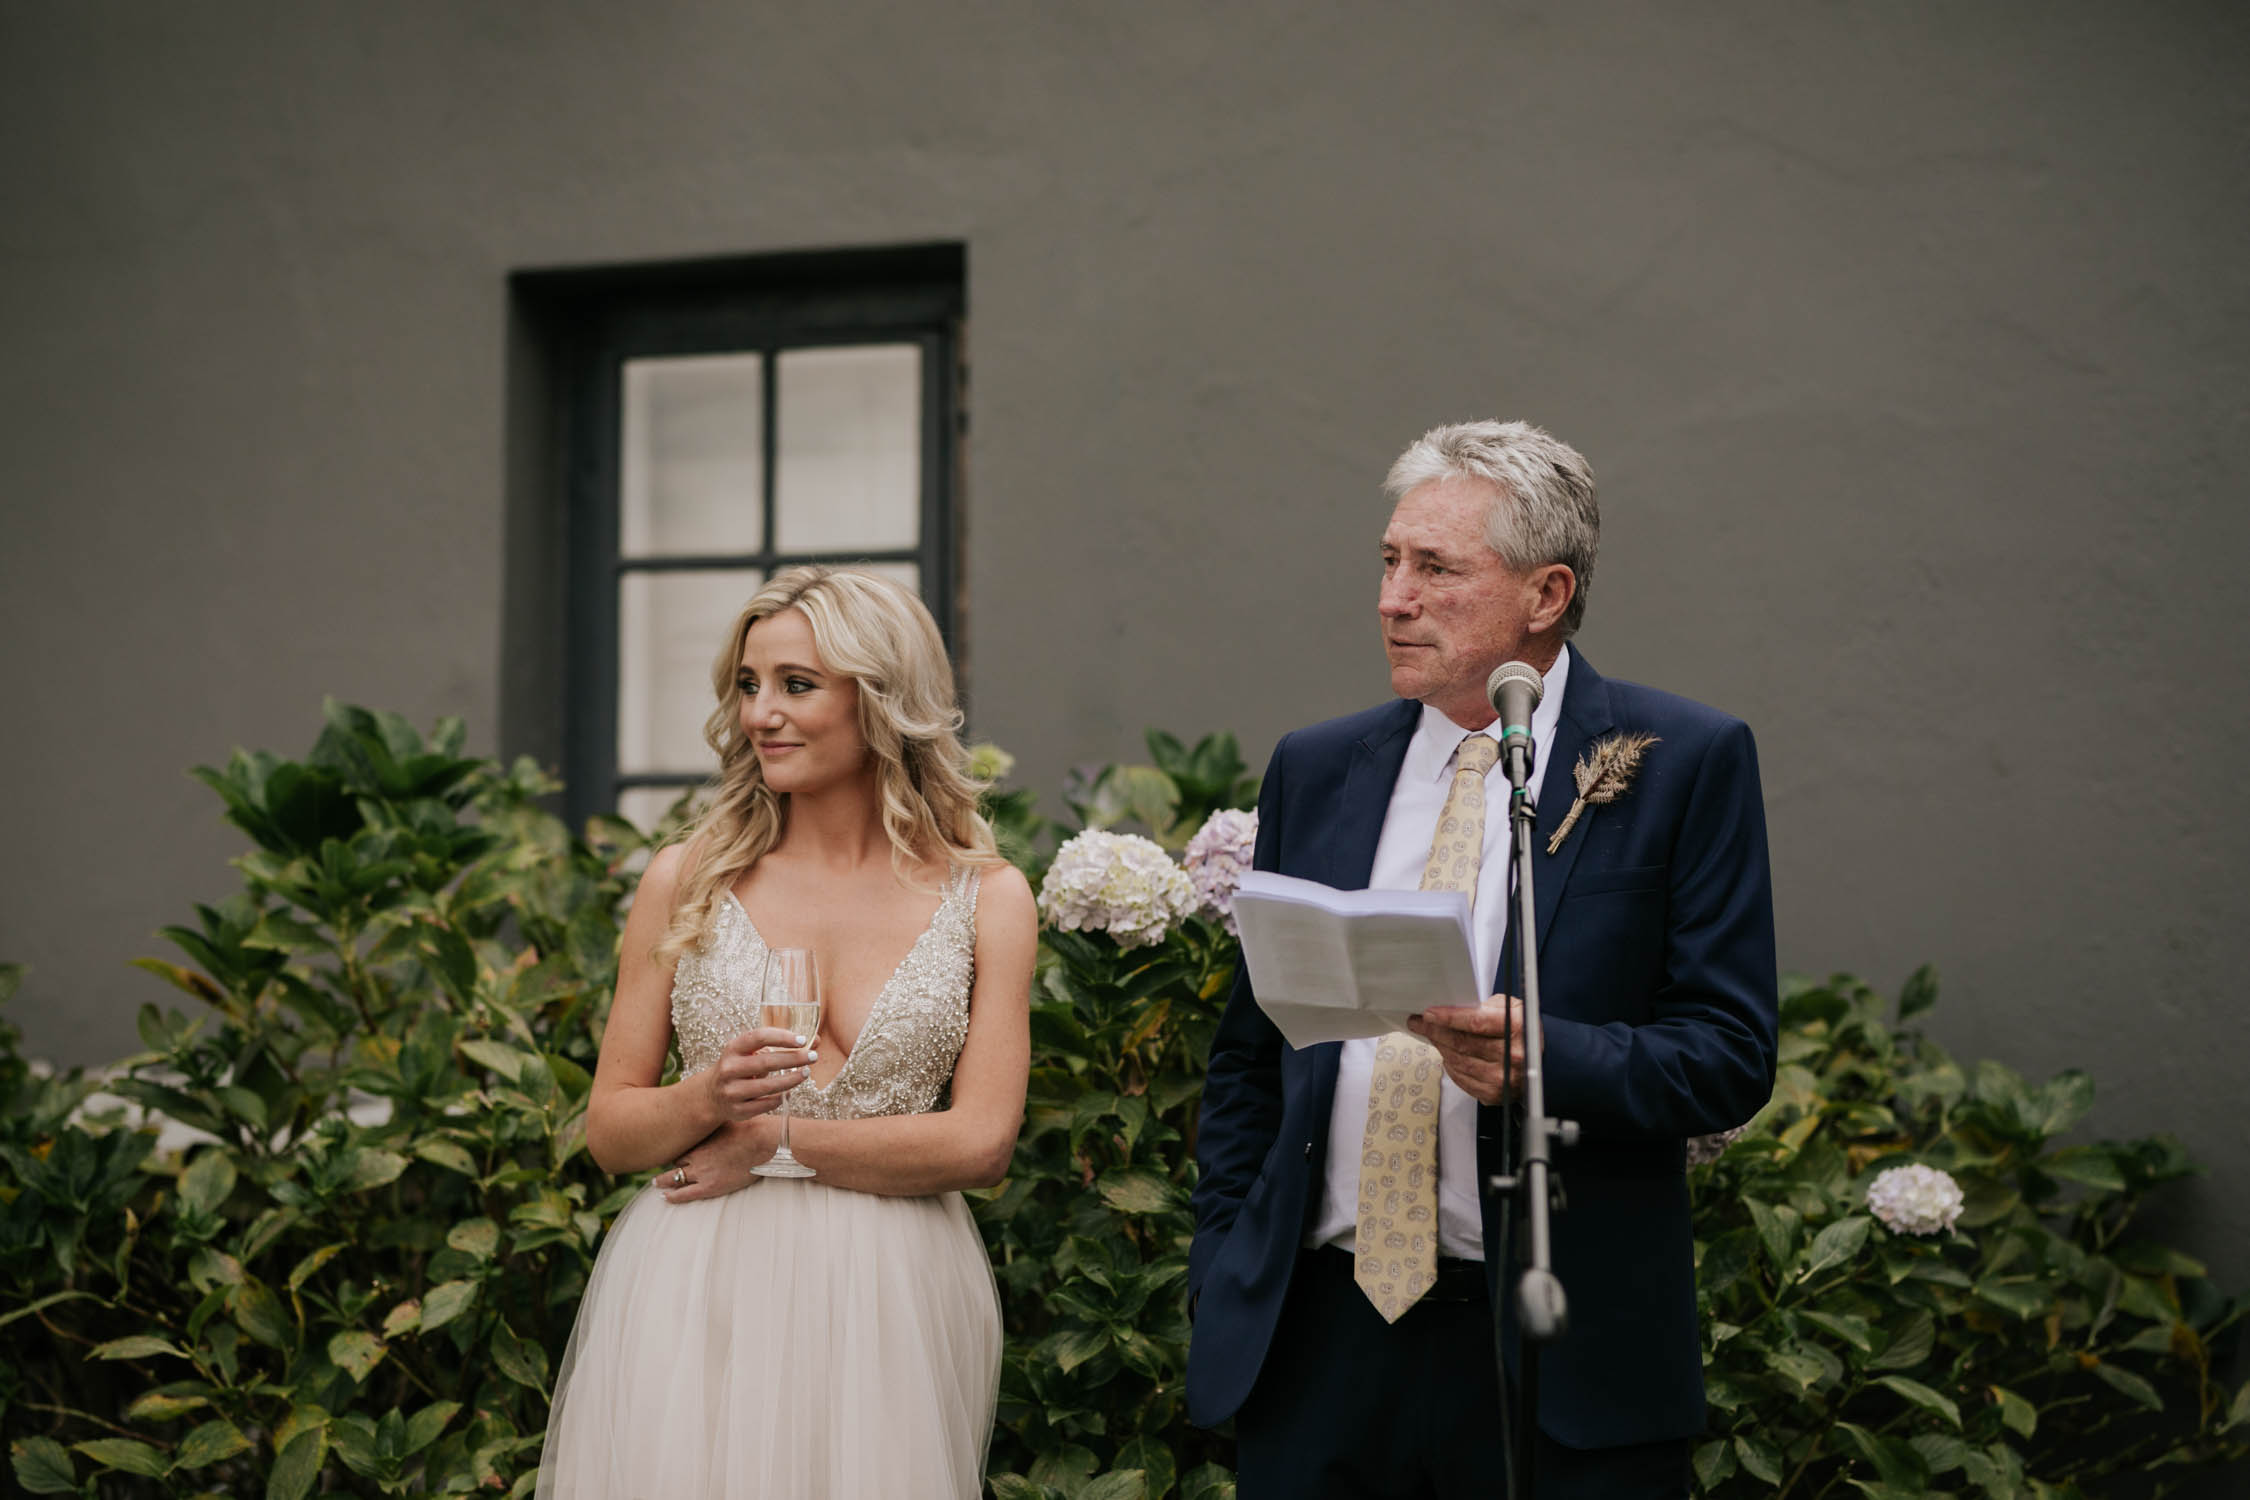 Father of the bride saying a speech to his daughter